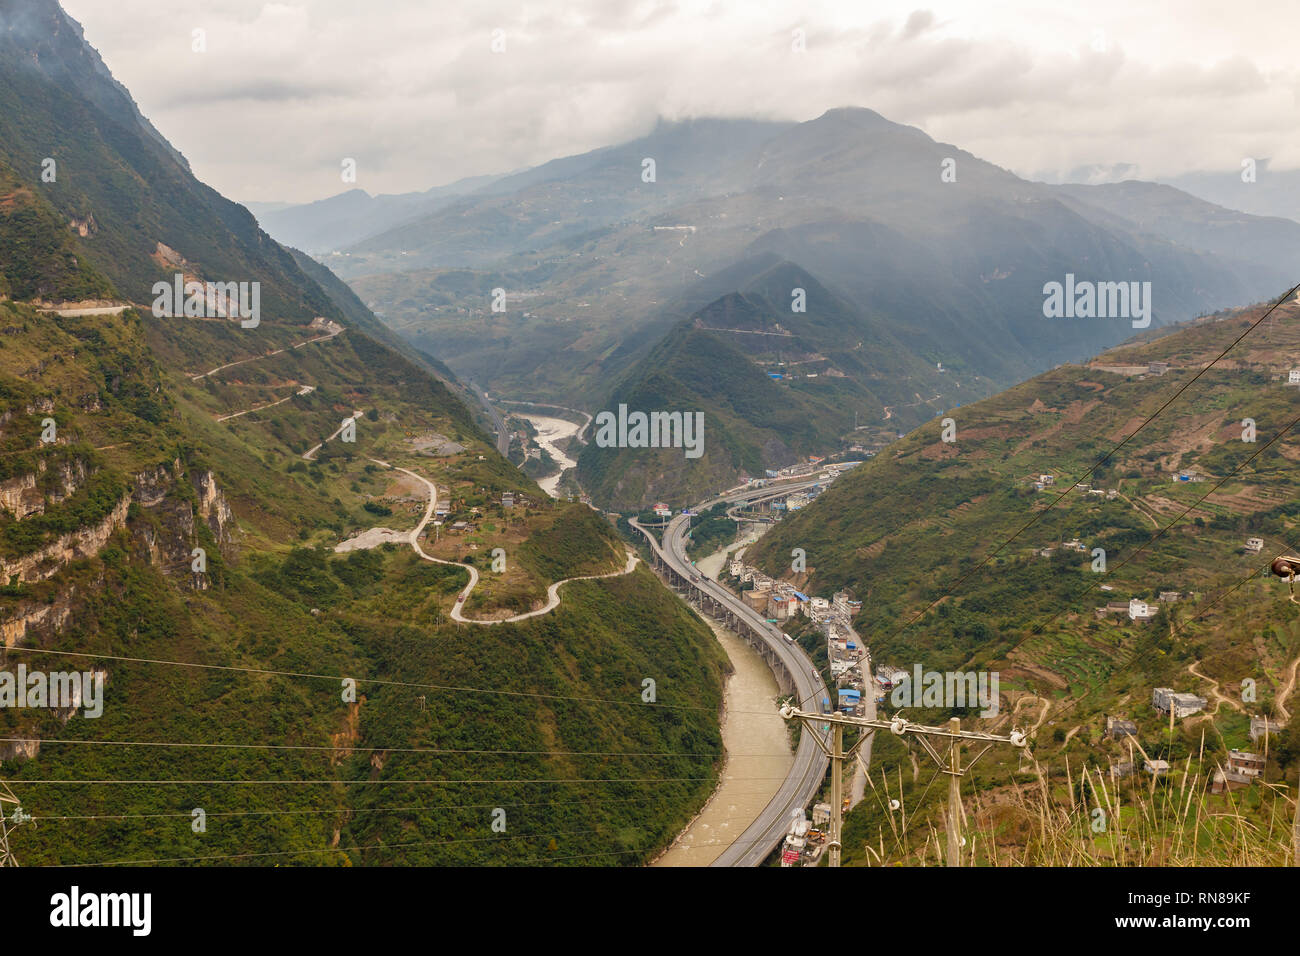 highway passes in a gorge in the mountains along the river, Heng River, Yunnan Province, China - Stock Image